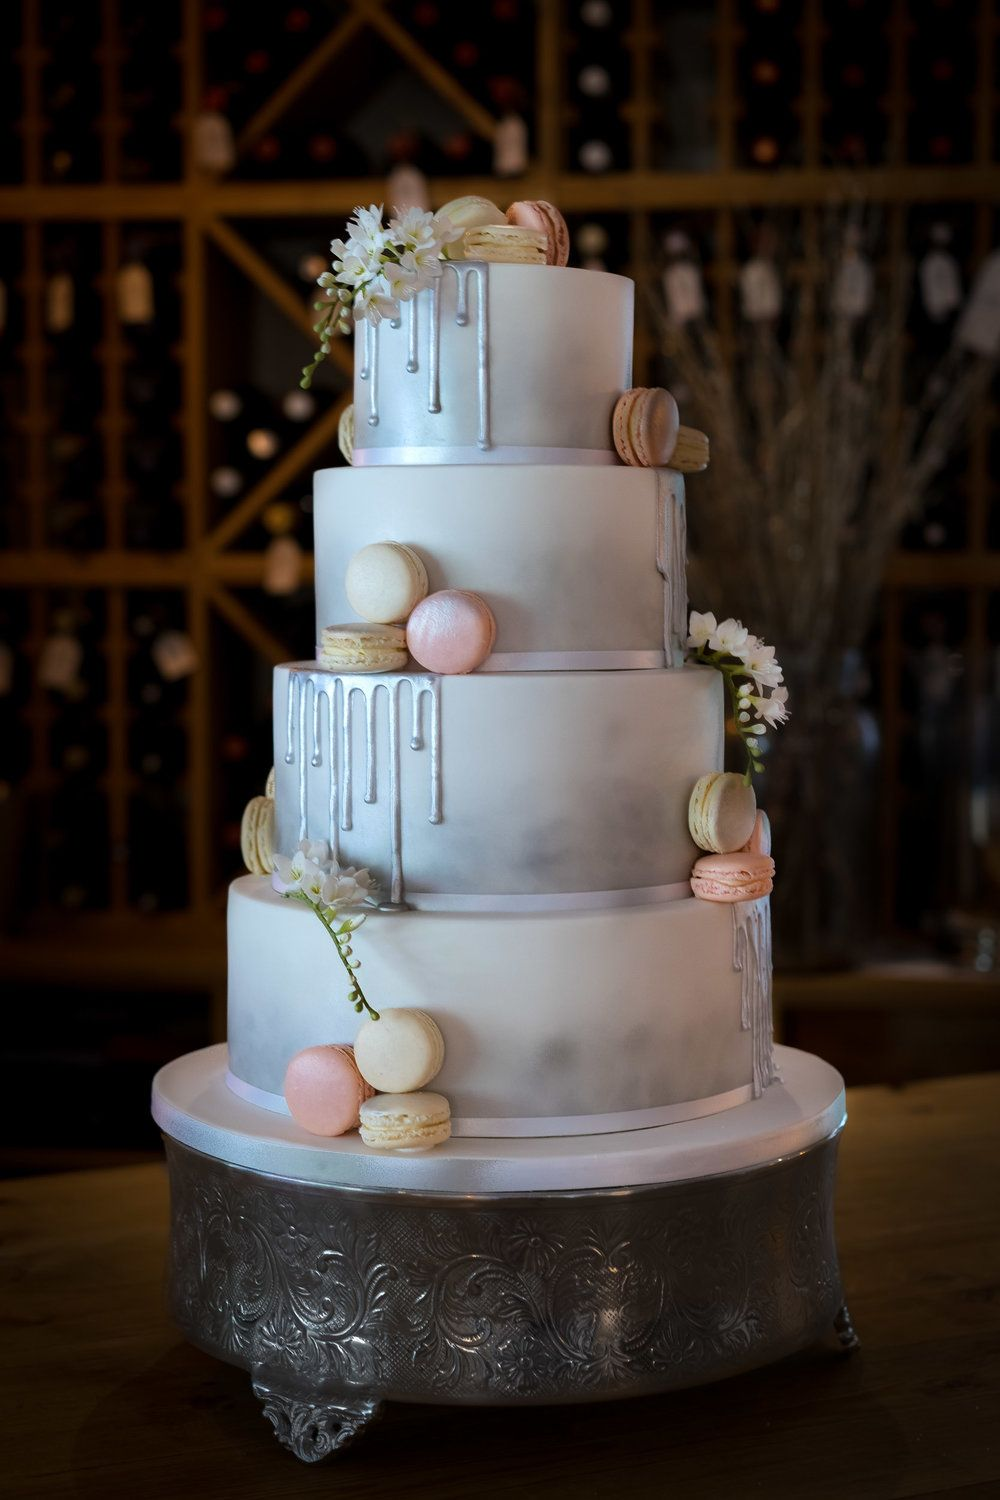 Silver Drip And Macarons Wedding Cake From Our Cake Kitchen In